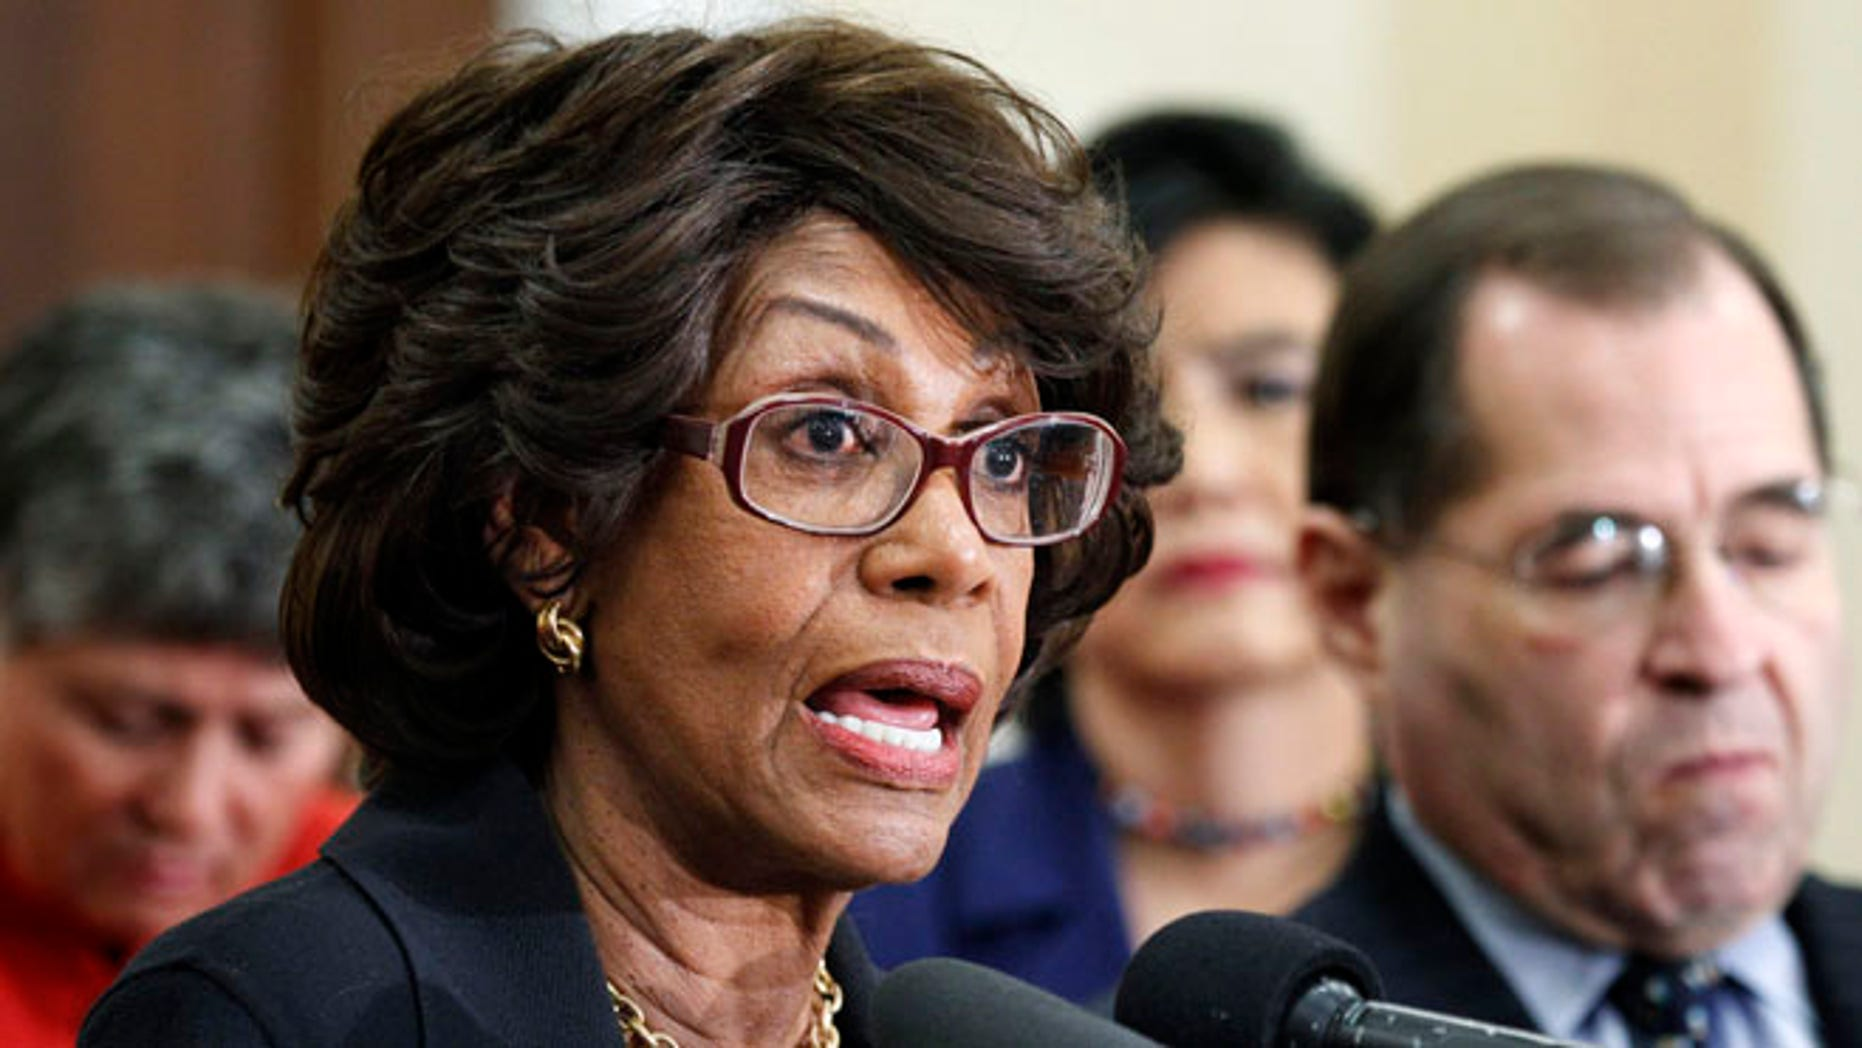 Feb. 8, 2011: Rep. Maxine Waters, D-Calif., speaks during a news conference on Capitol Hill.